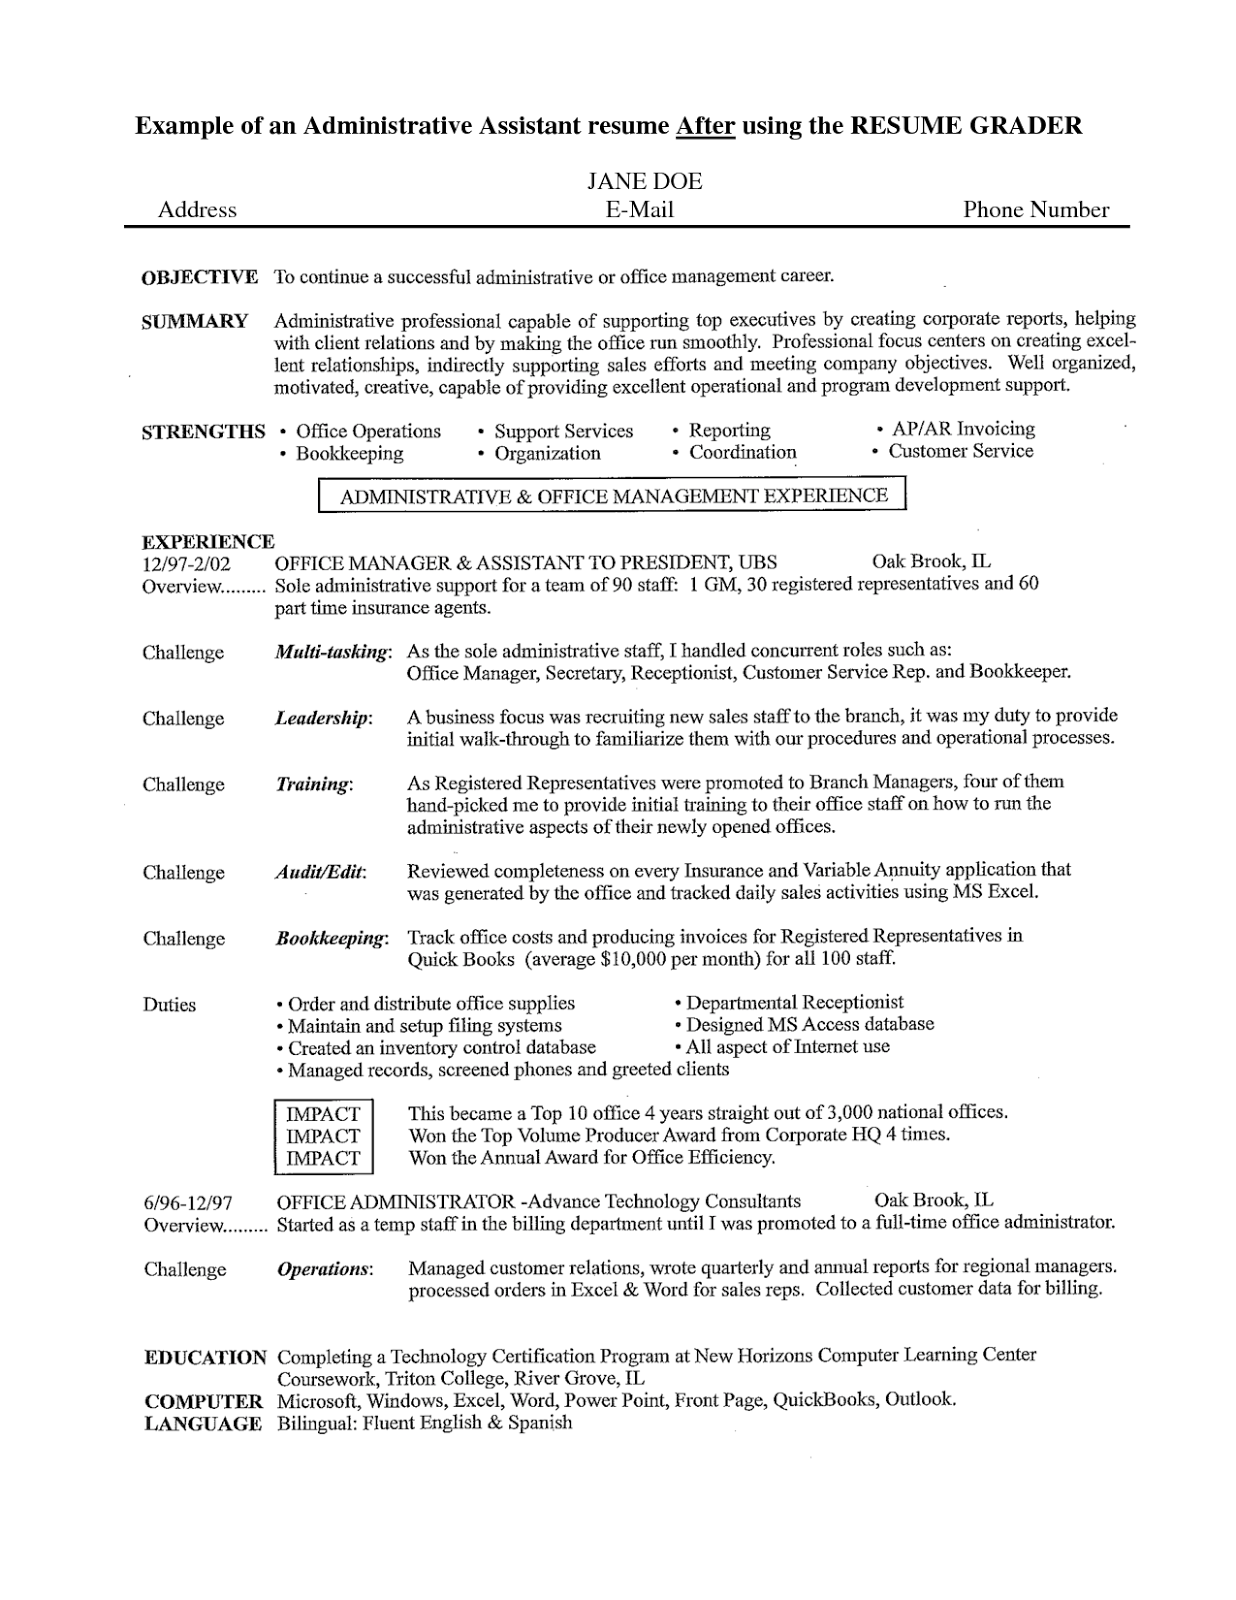 resume objective exles administrative assistant sle objective on resume for administrative assistant